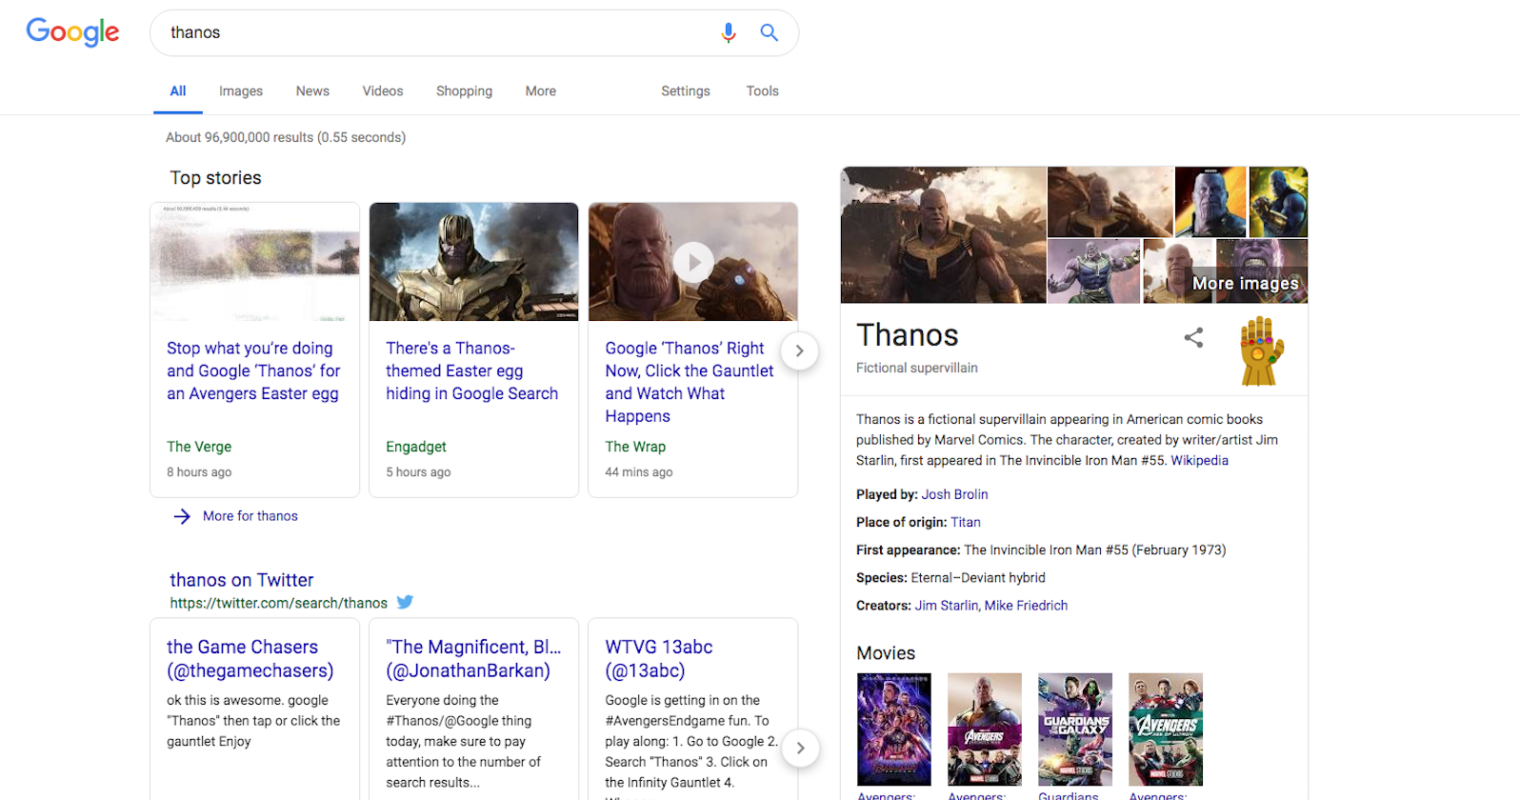 Google Thanos Easter Egg Wipes Out Half of All Search Engine Results